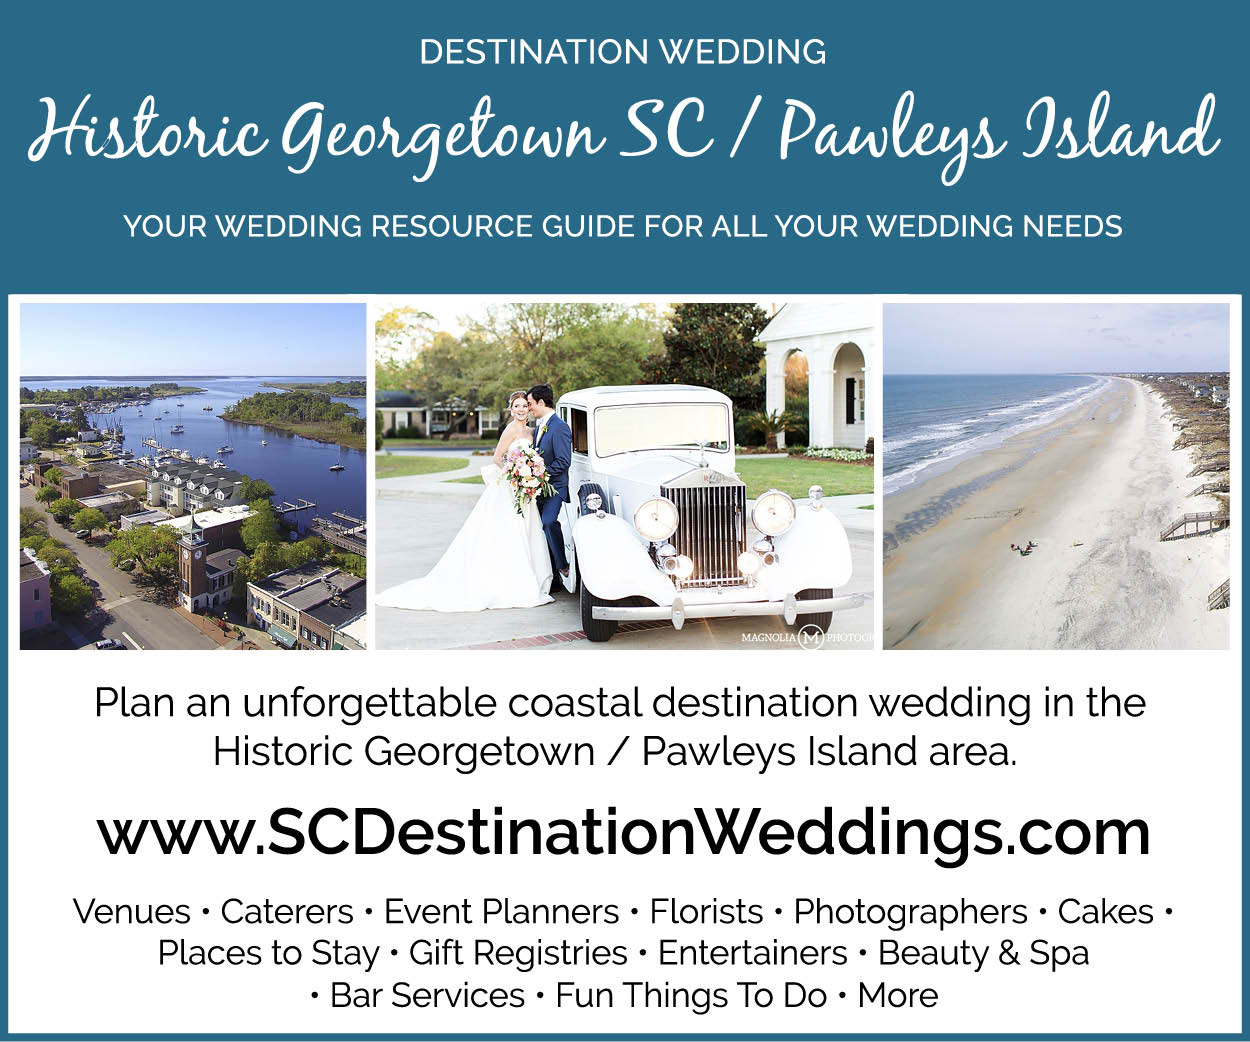 SC DEST WED - HGT ad - Blue Good LGR.jpg